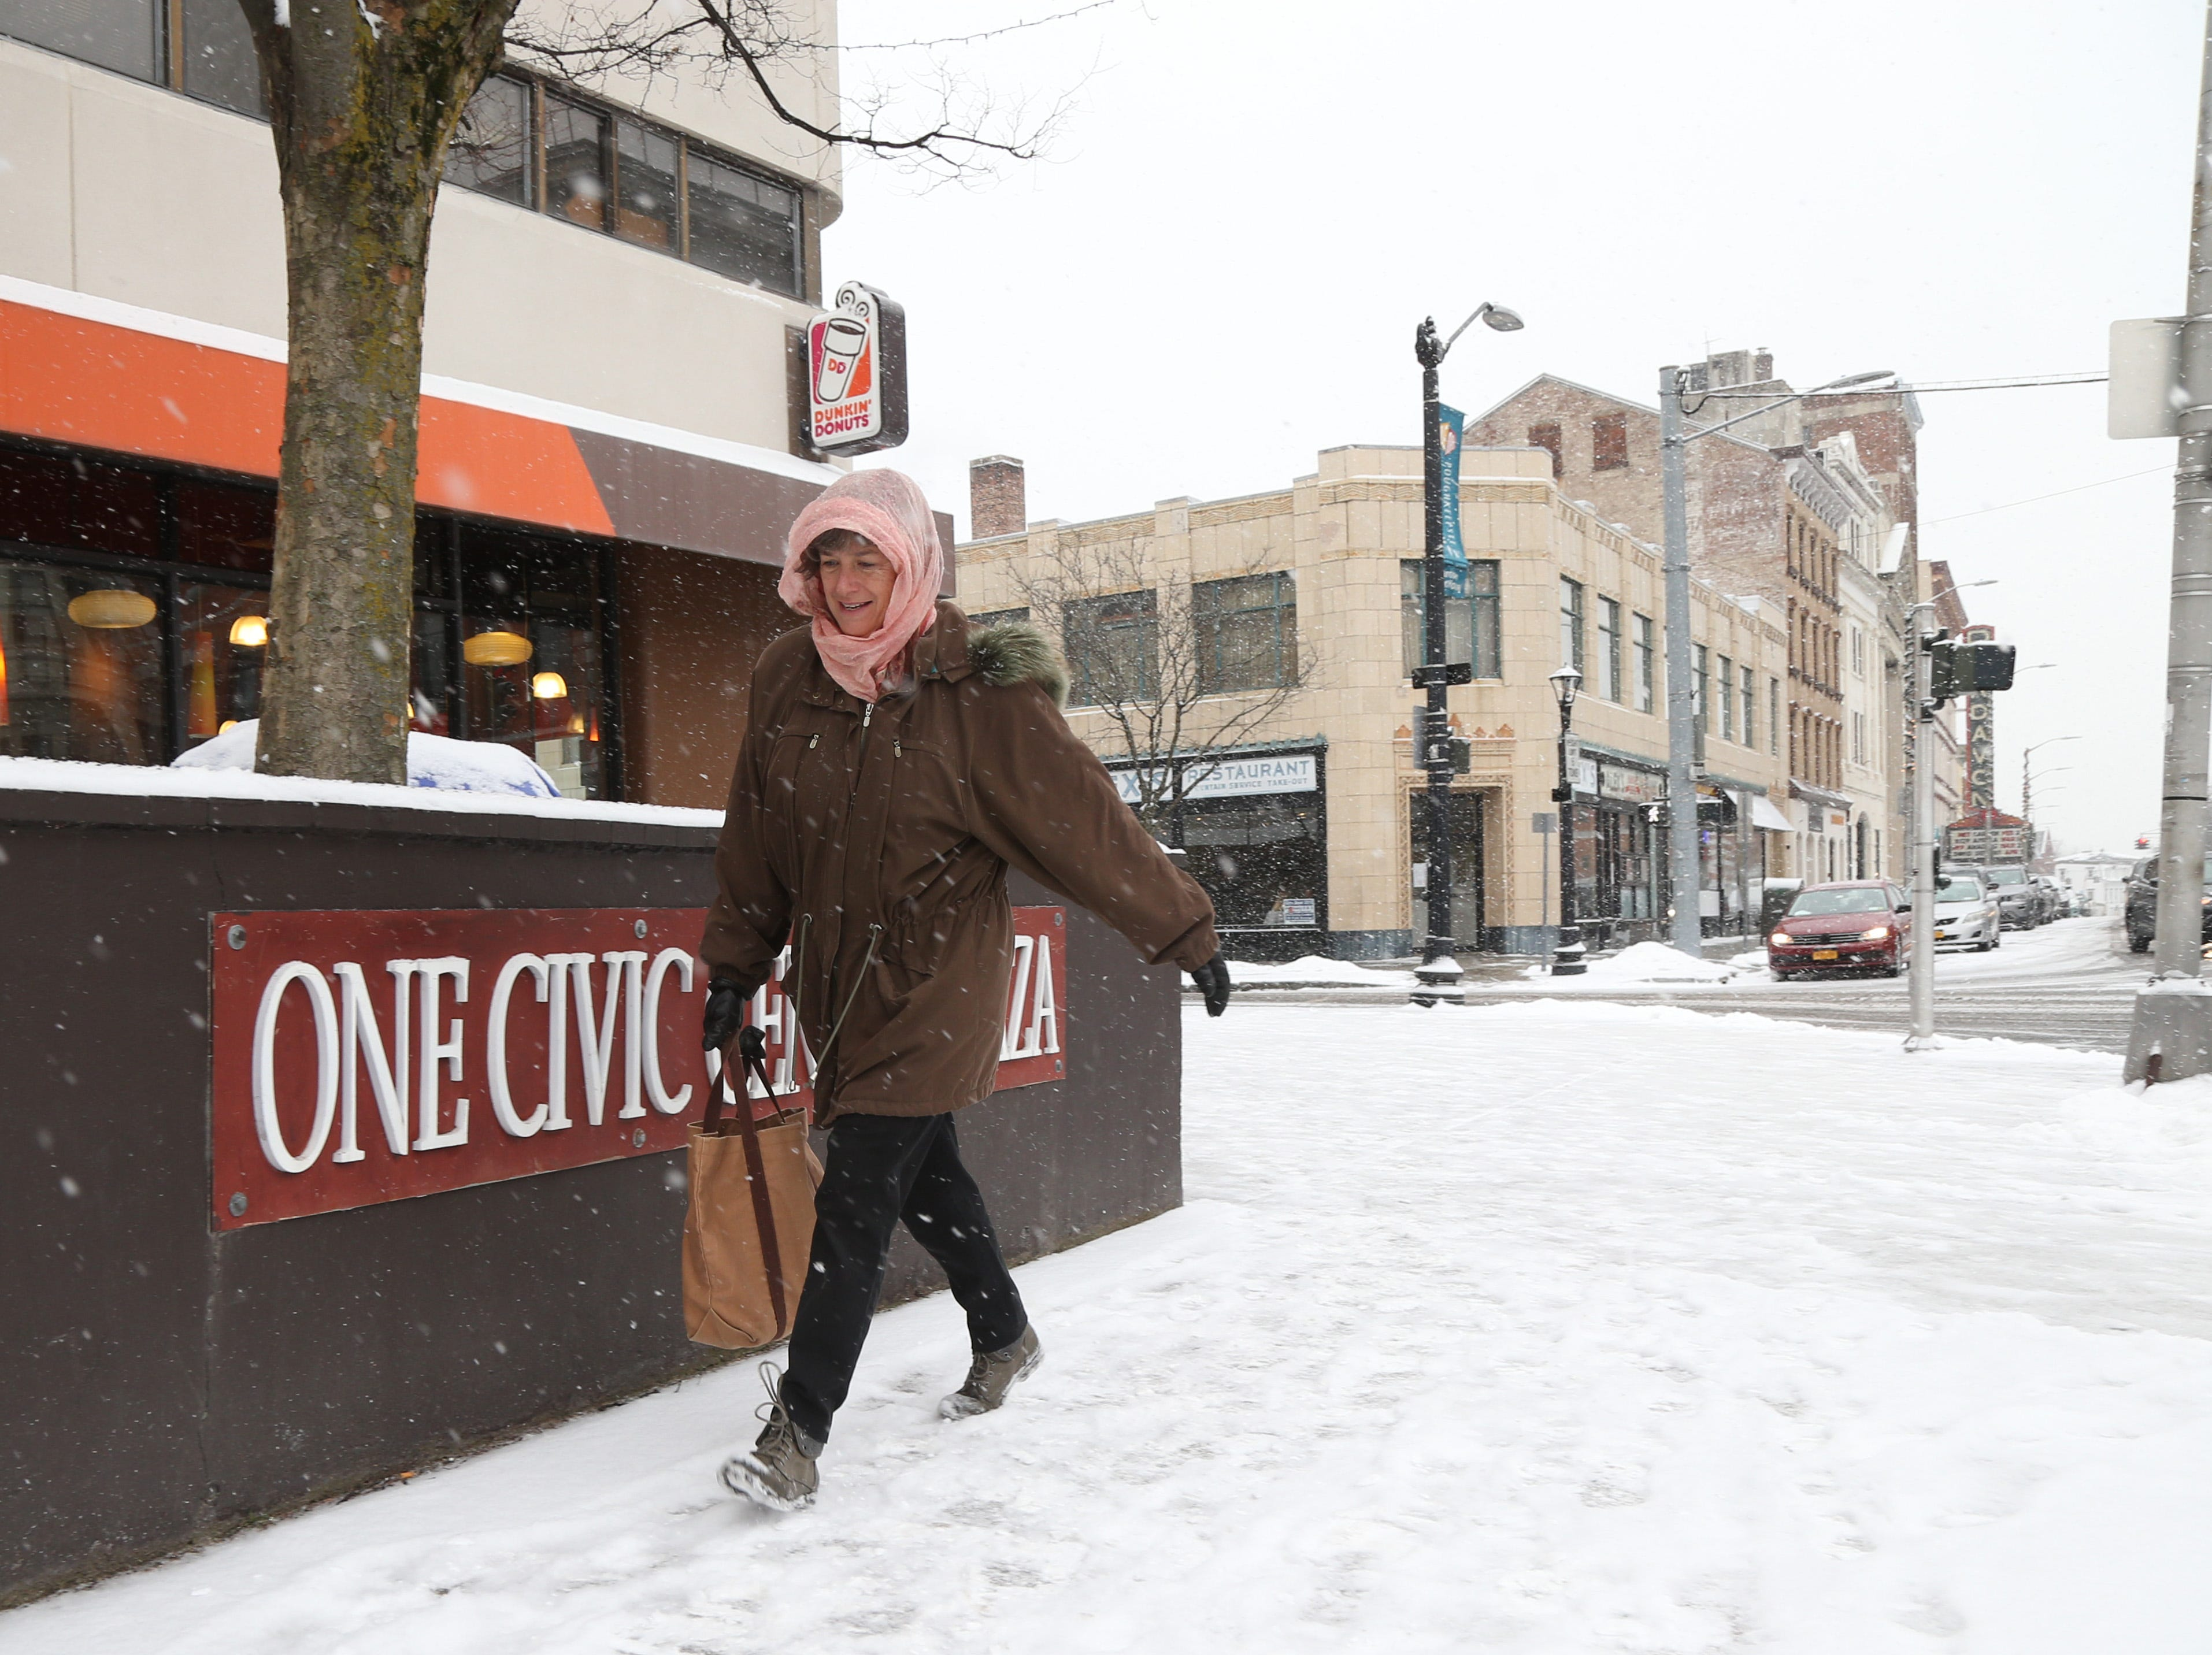 Gretchen Werner of Red Hook carefully navigates the snowy sidewalks of Market Street in the City of Poughkeepsie on January 29, 2019.